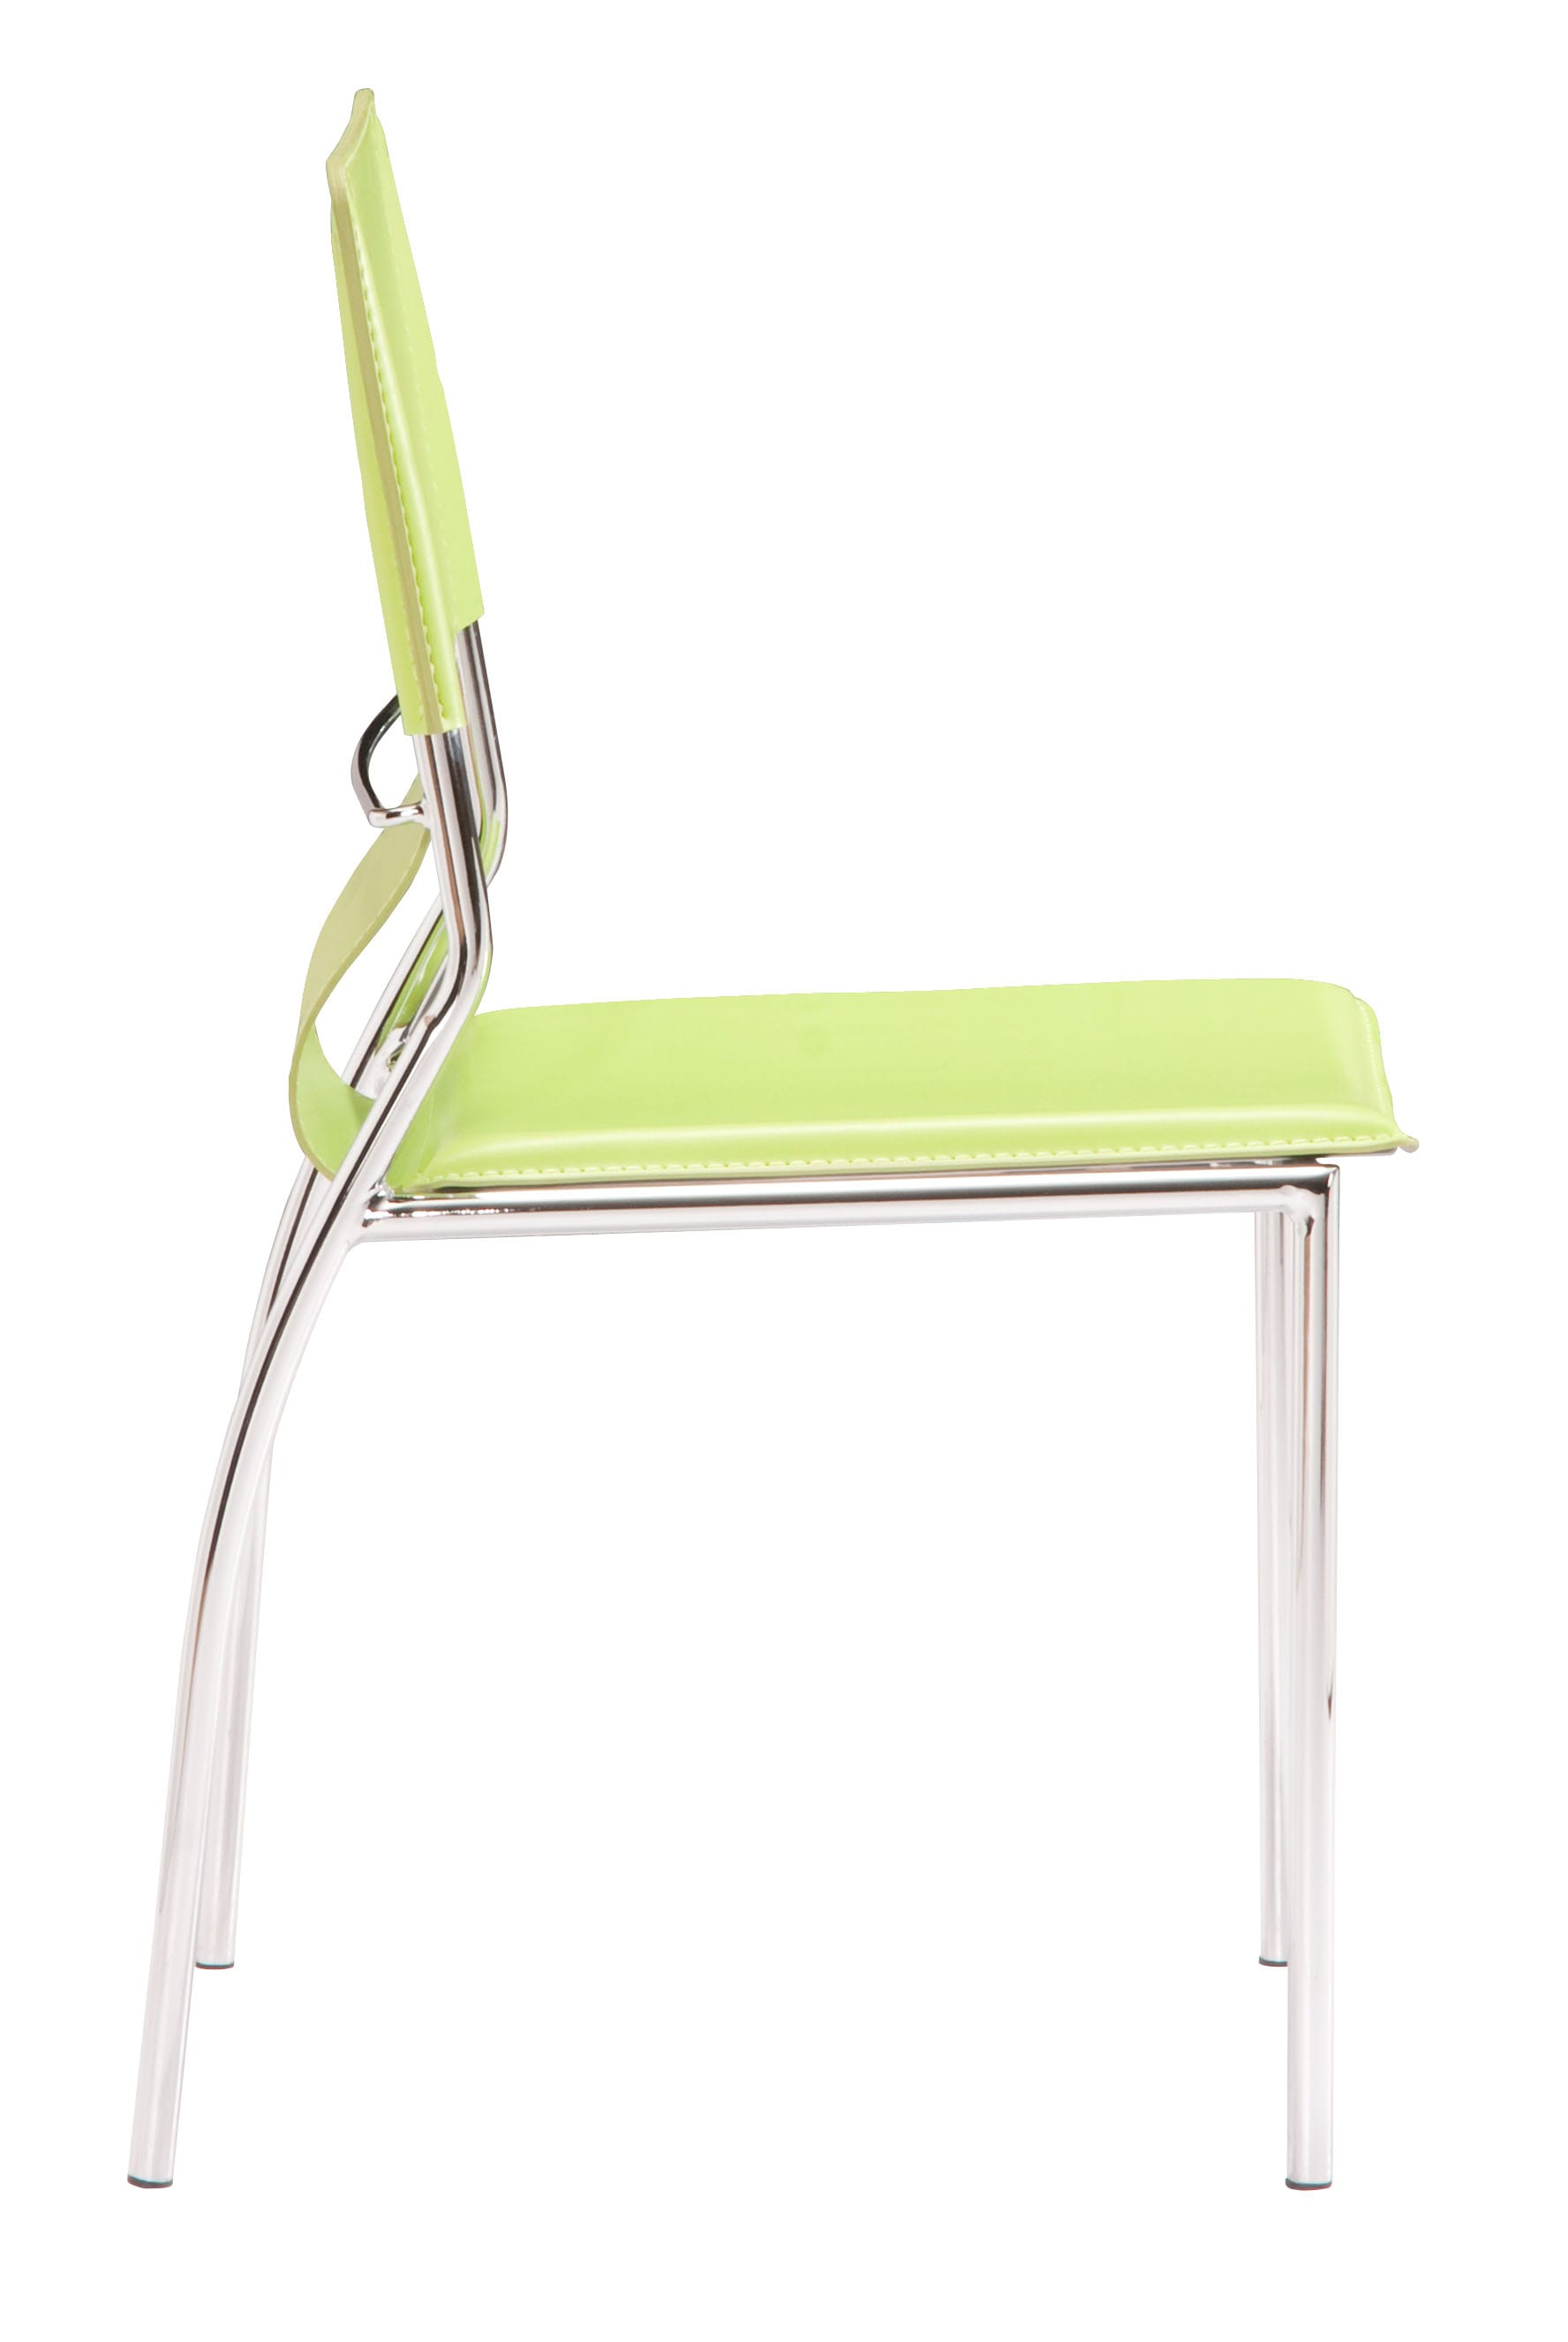 Trafico Dining Chair Green Set of 4 by Zuo Modern : 404134 2 from futonland.com size 1776 x 2652 jpeg 218kB